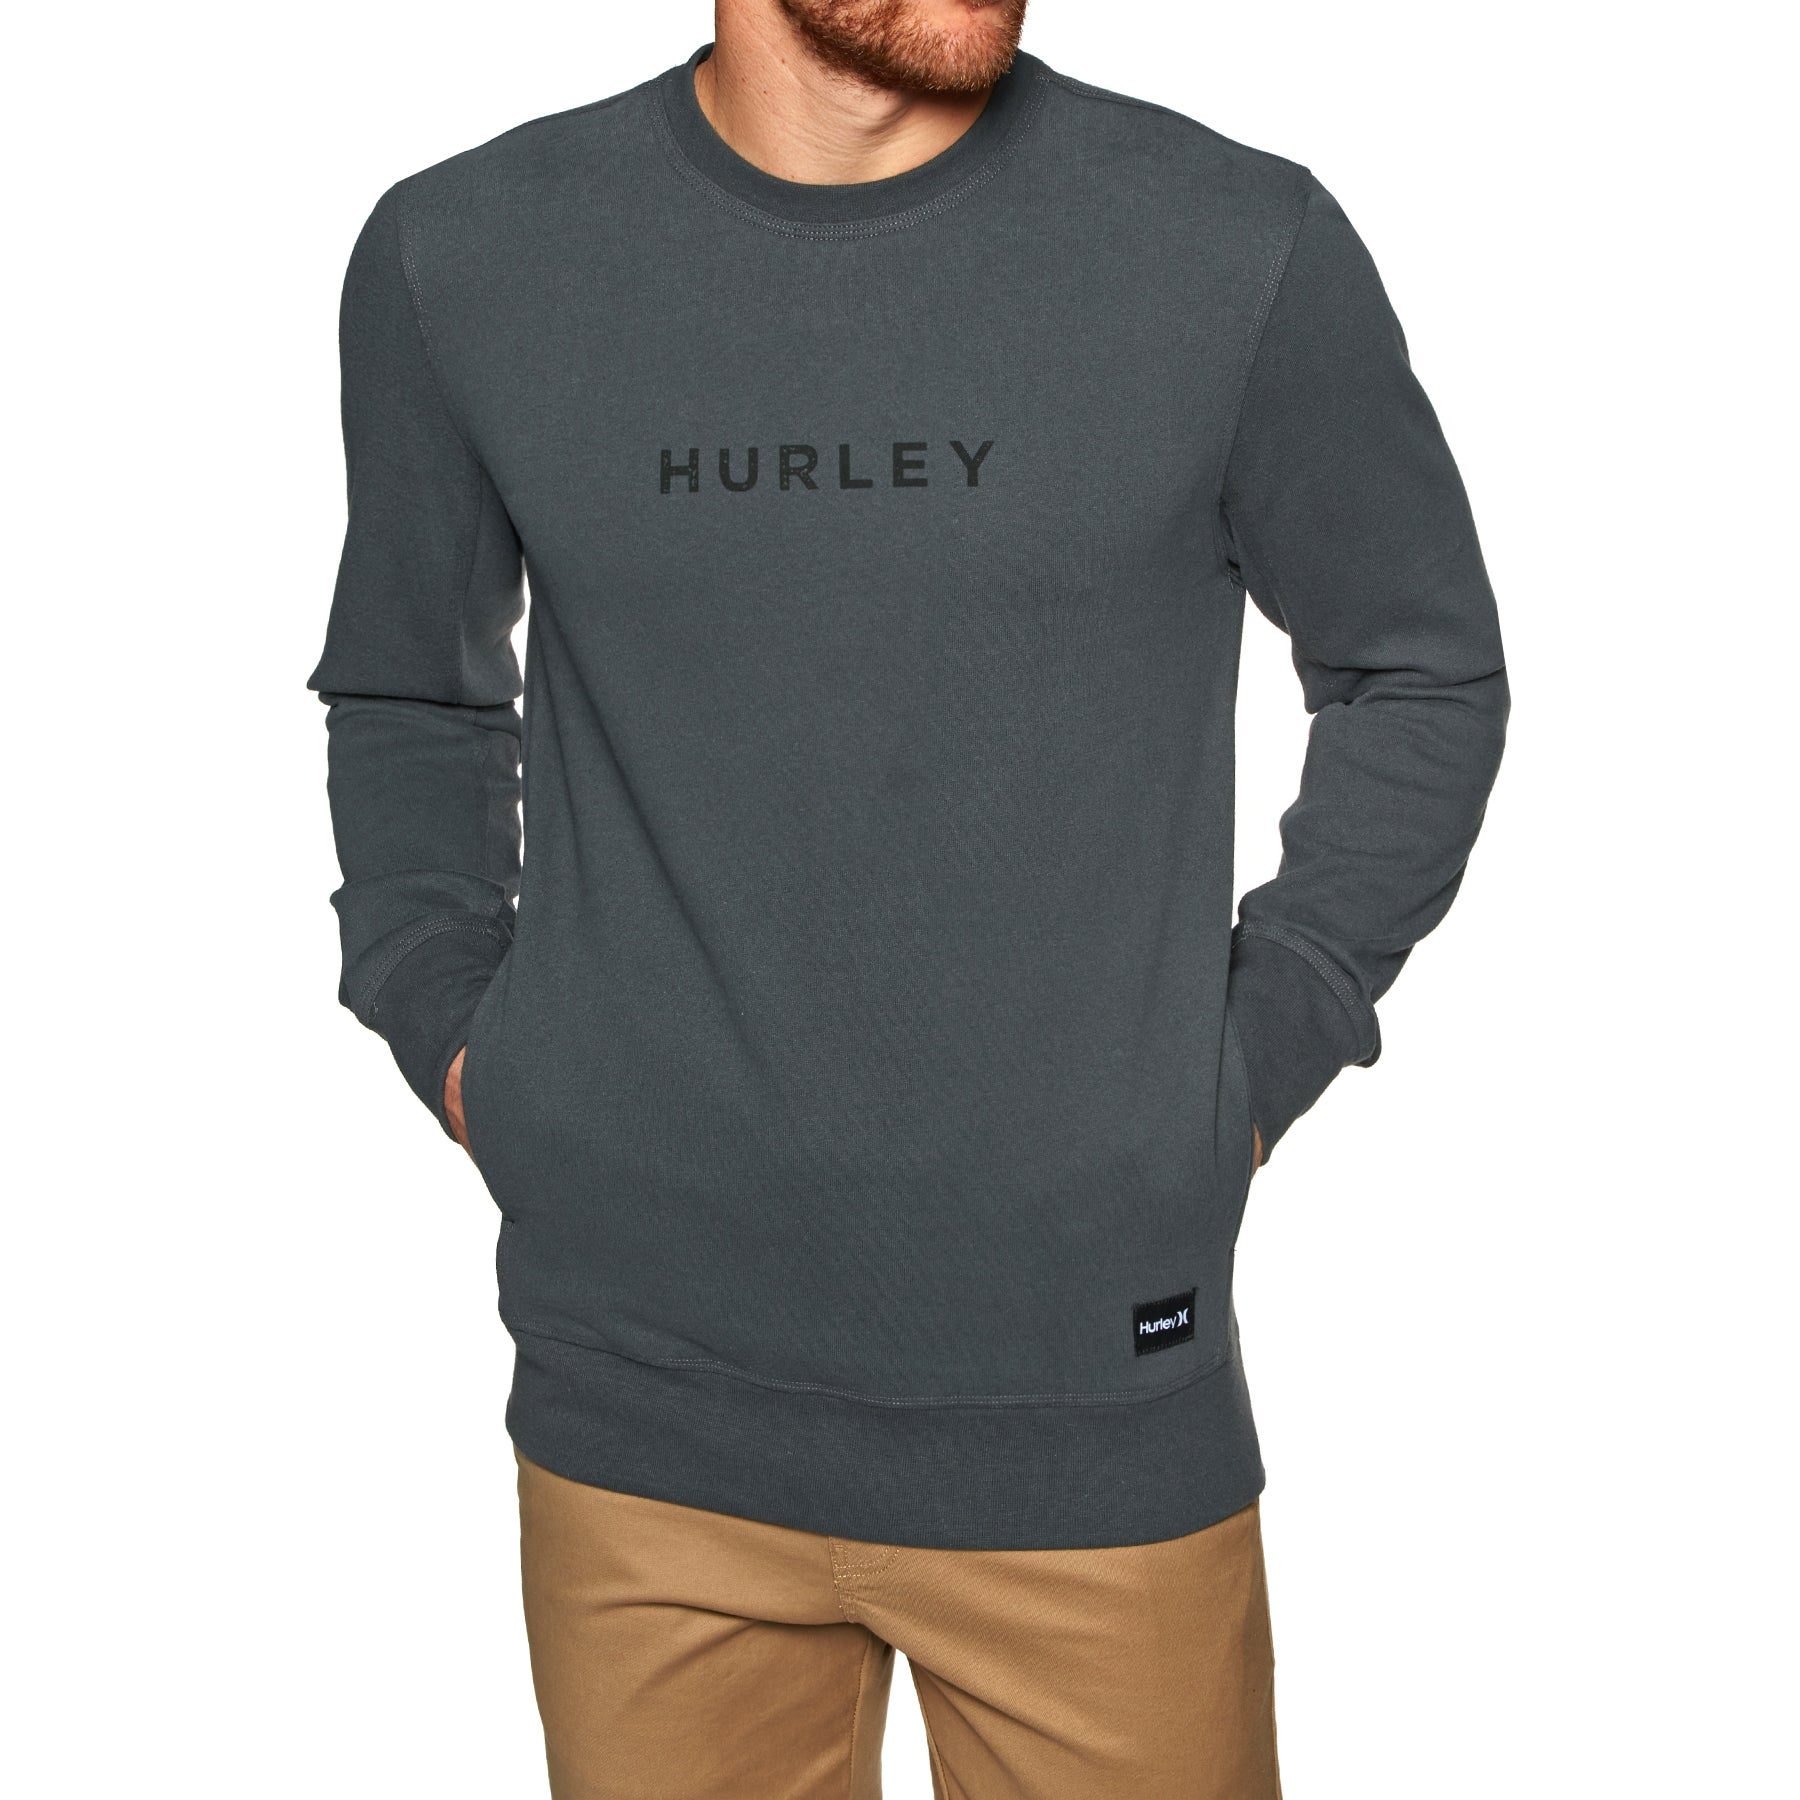 Hurley Atlas Boxed Crew Sweater - Anthracite